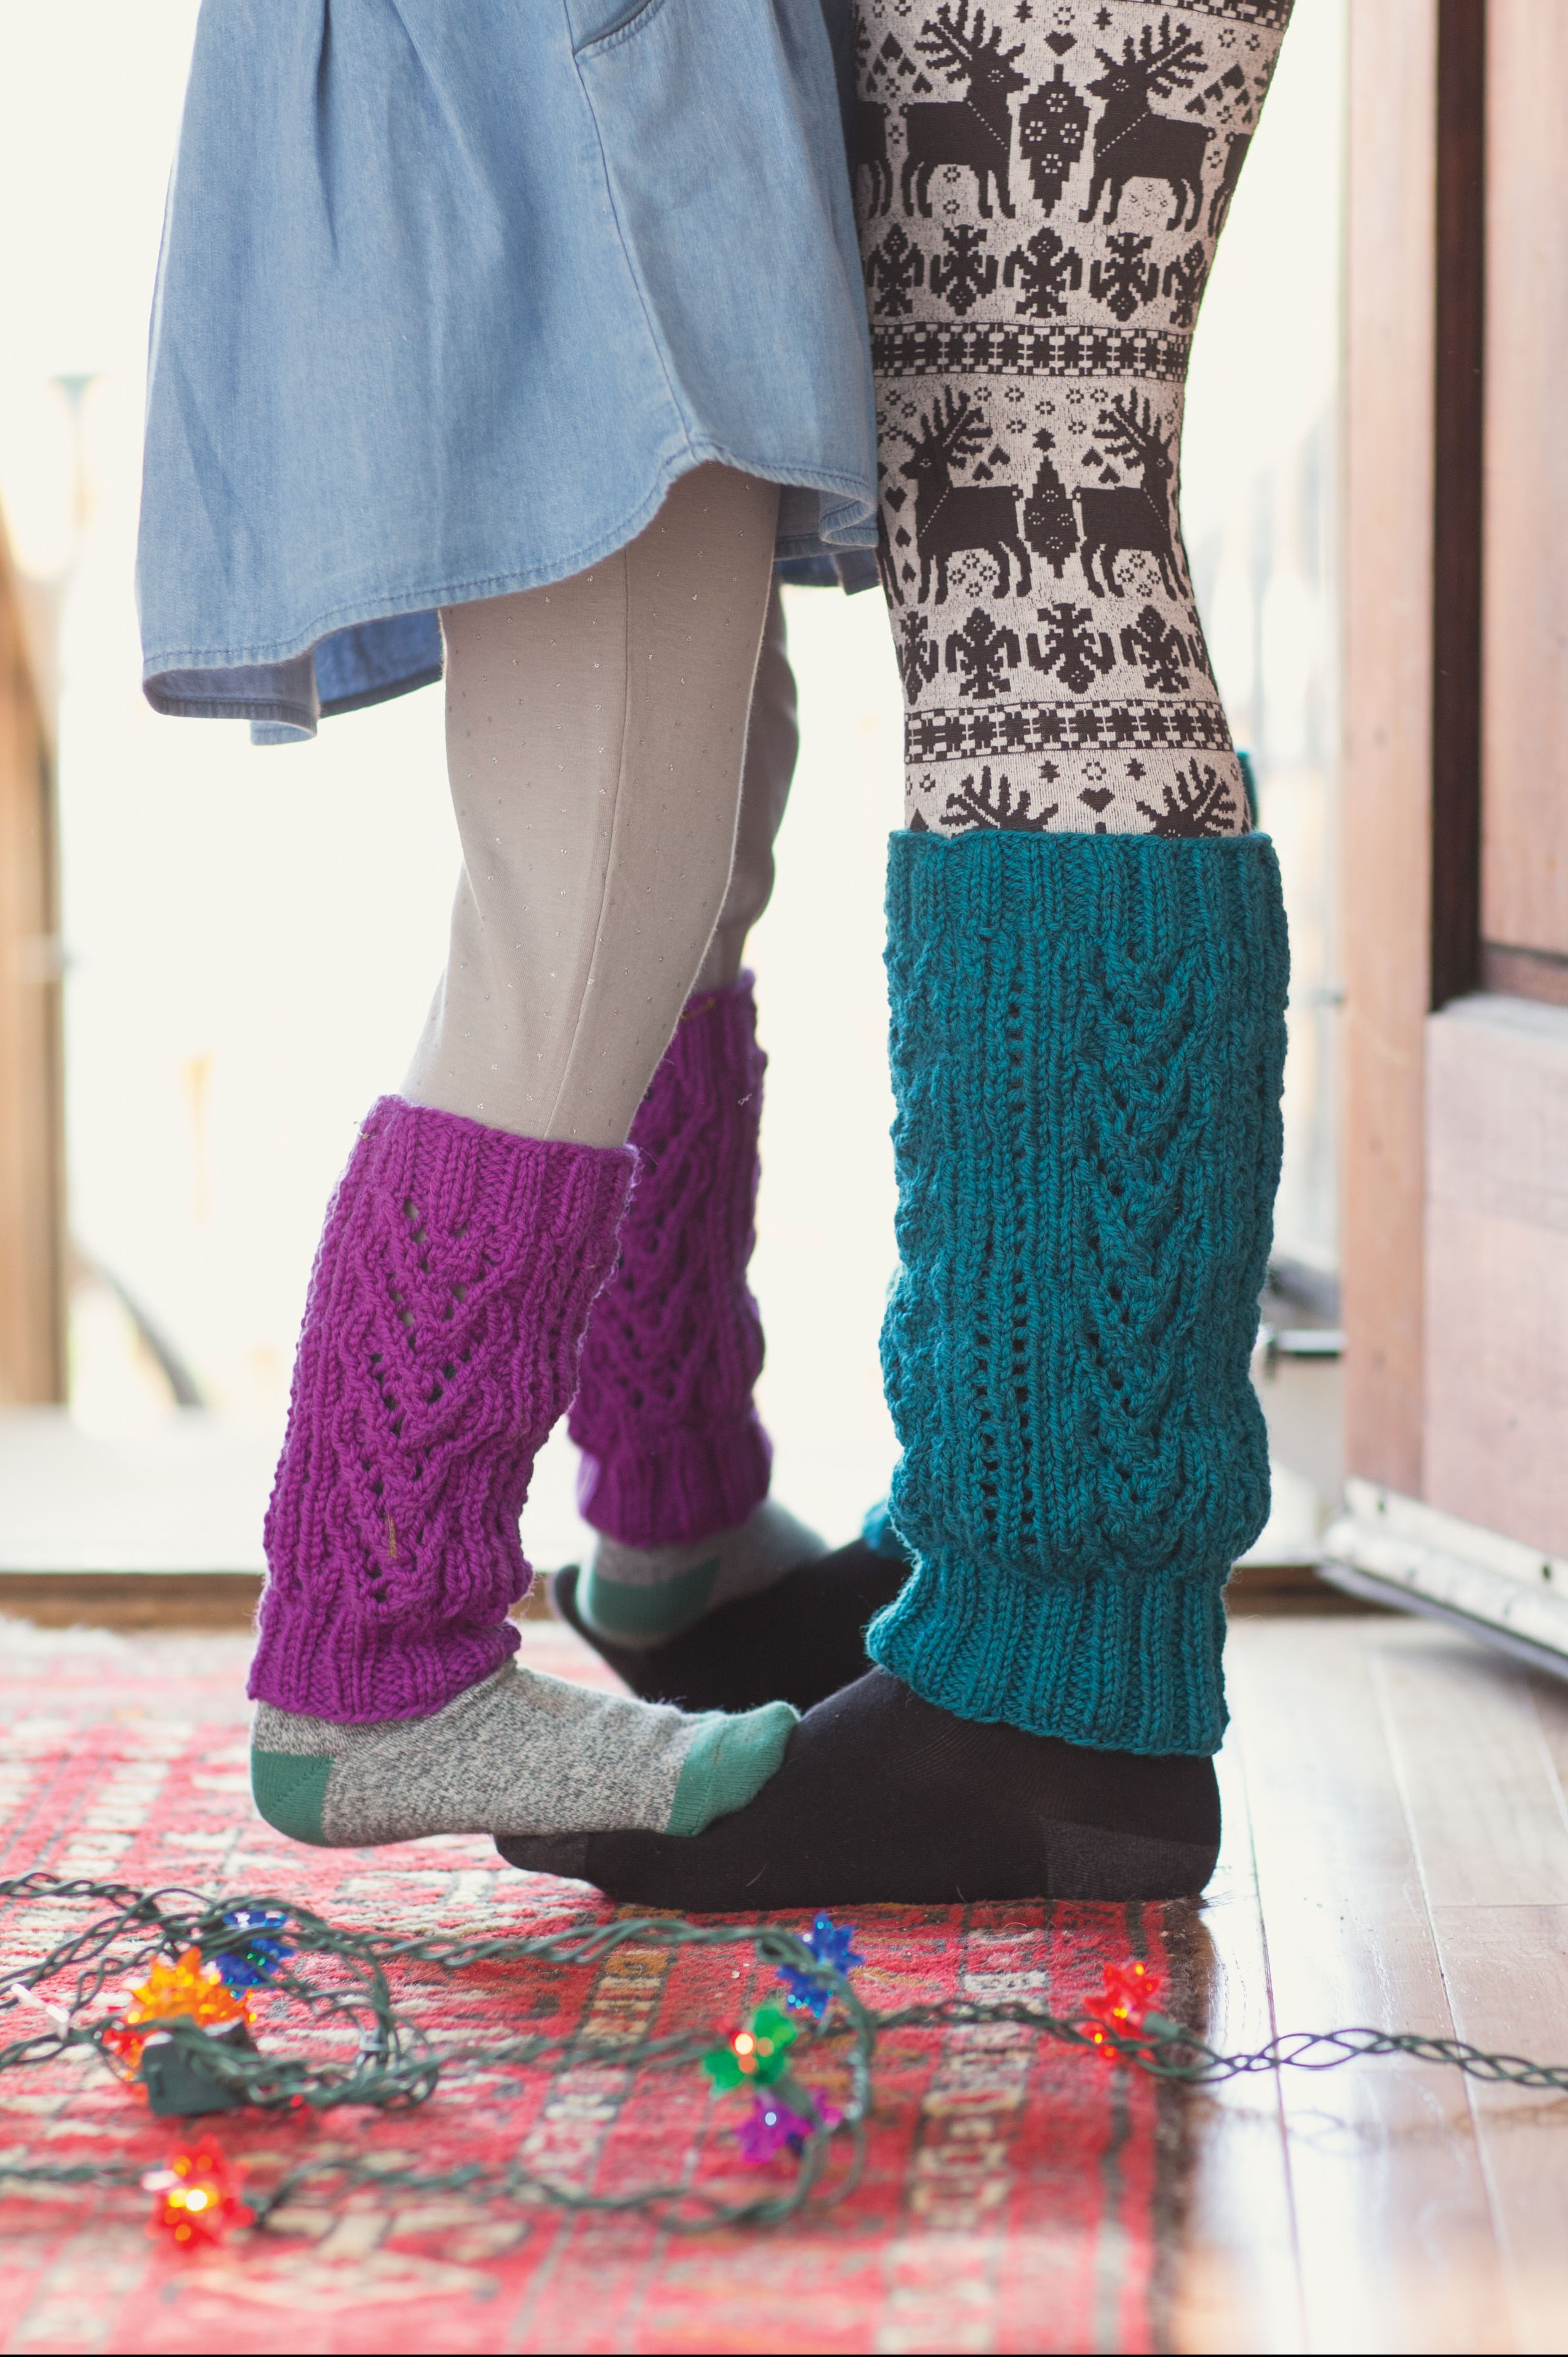 Knits-Gifts-2015-0300